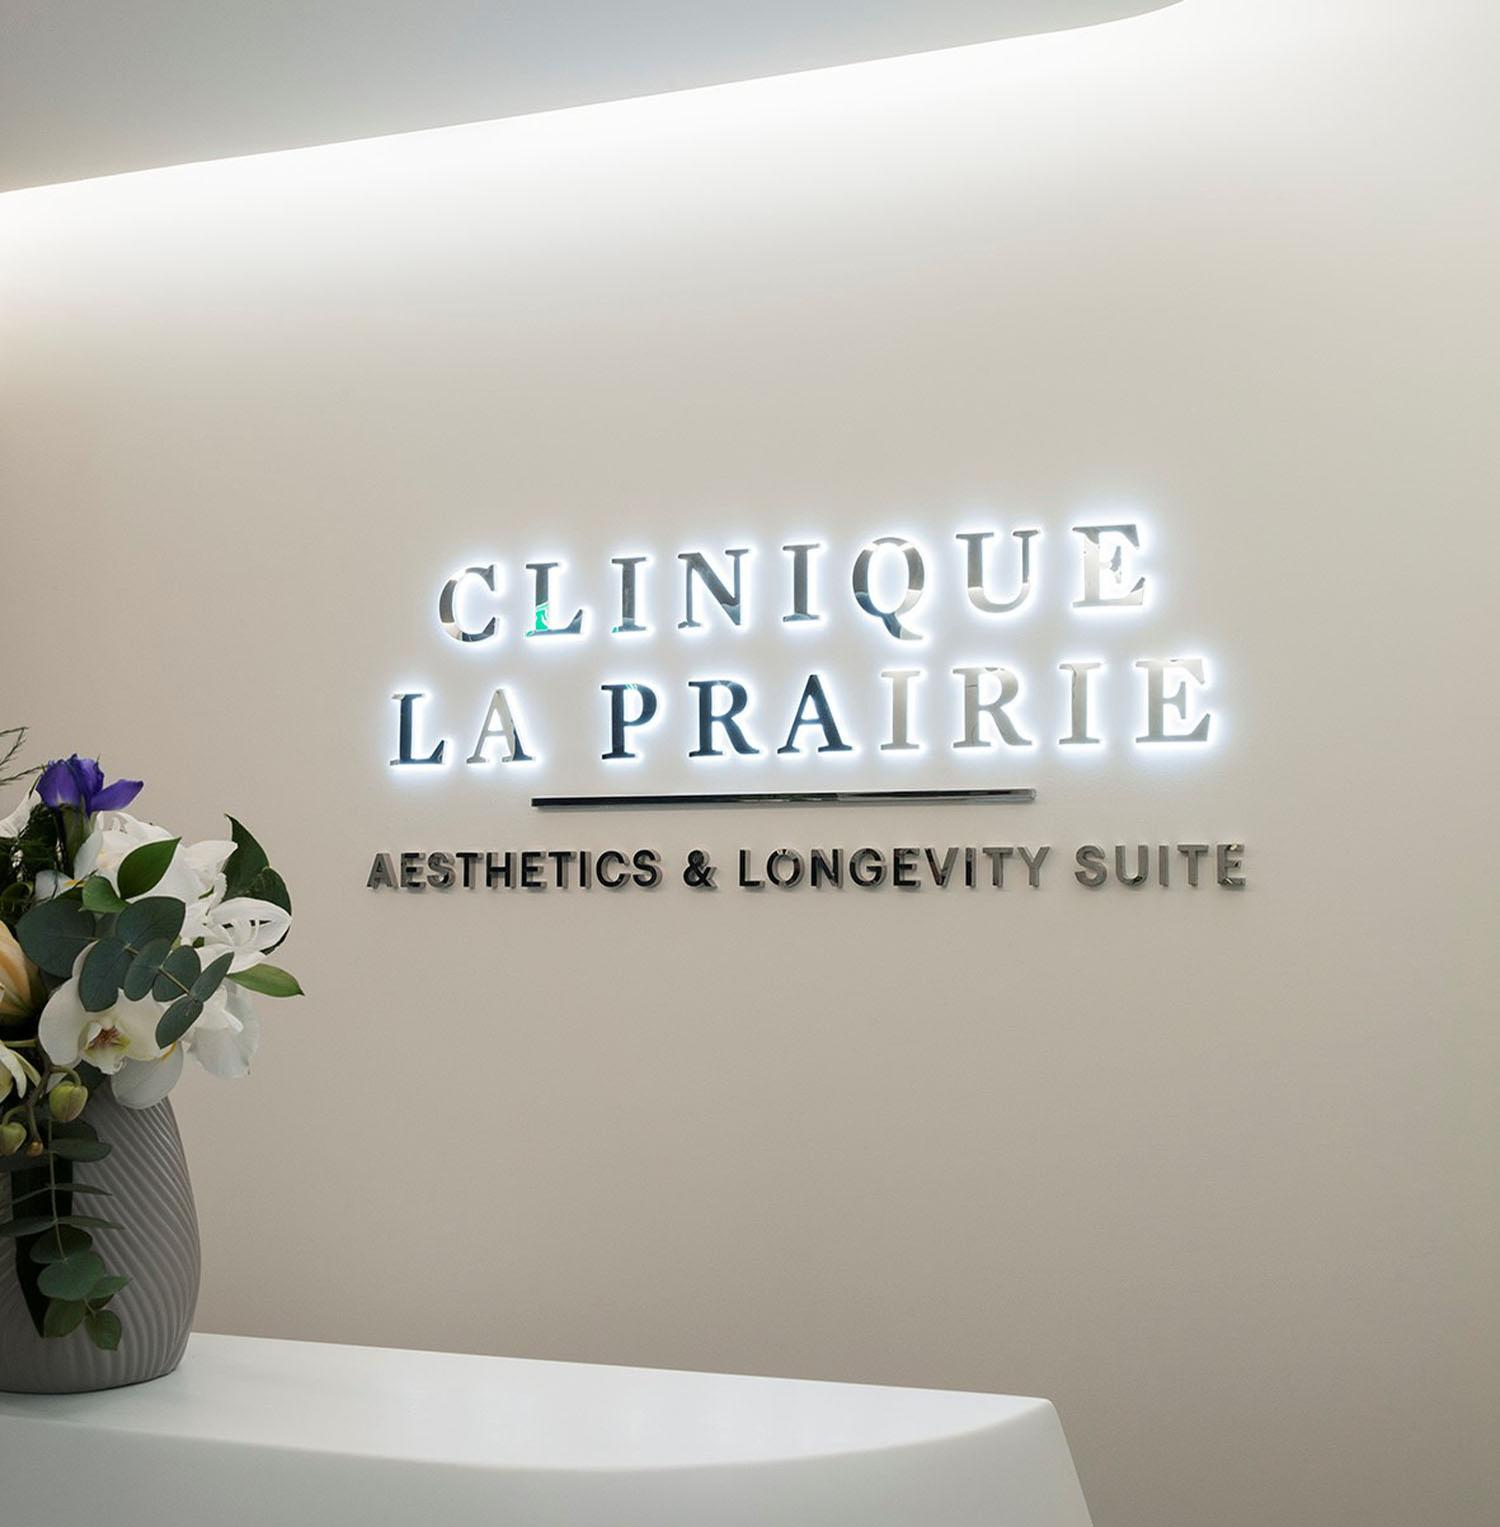 The medi-spa is called Clinique La Prairie – Aesthetics & Longevity Suites